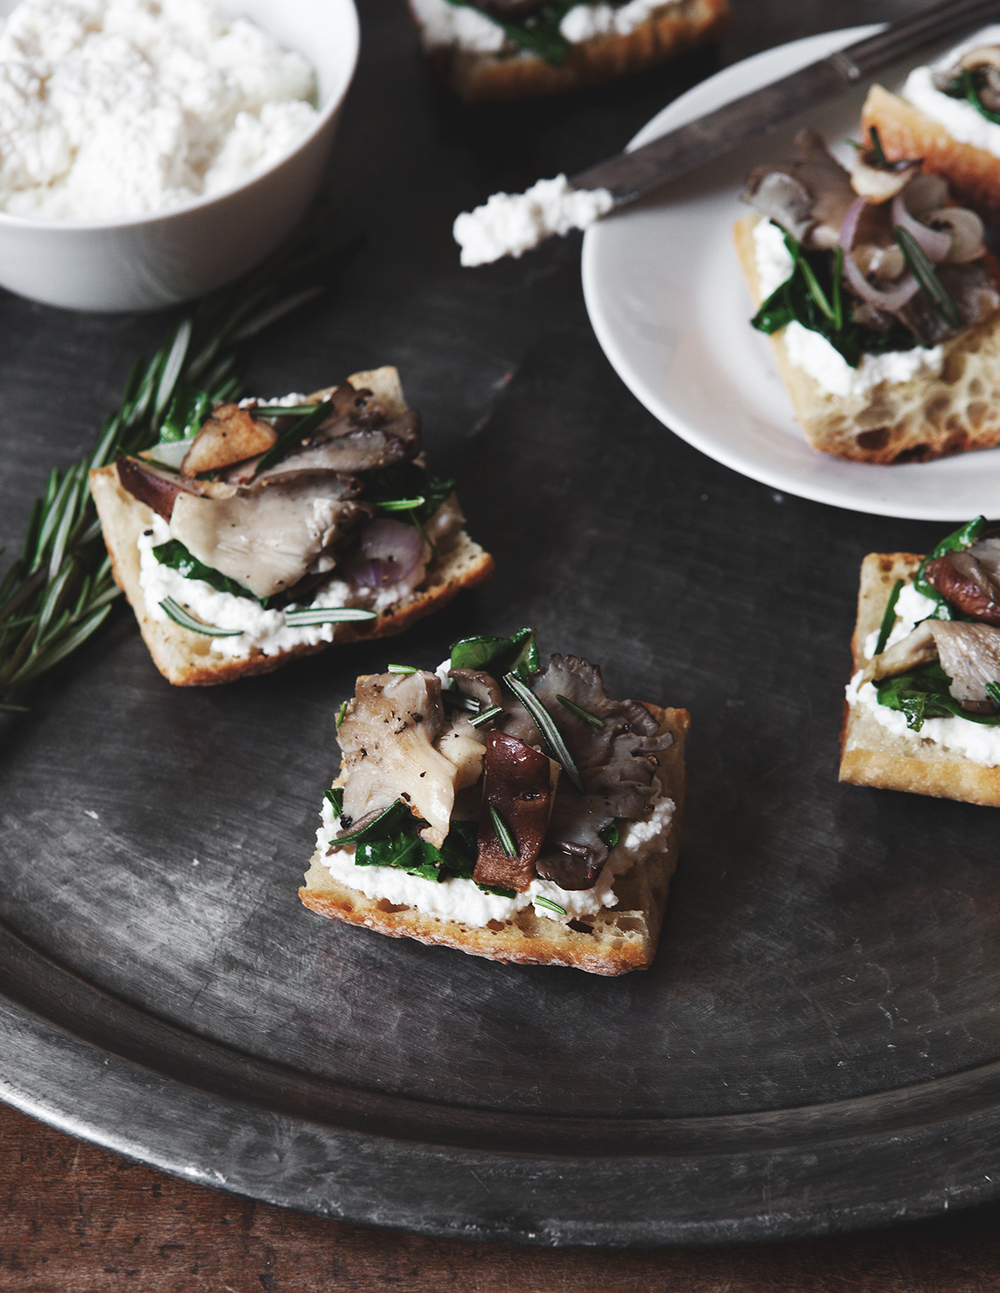 ABHSS_Winter Chard and Mushroom Bruschetta_004.jpg